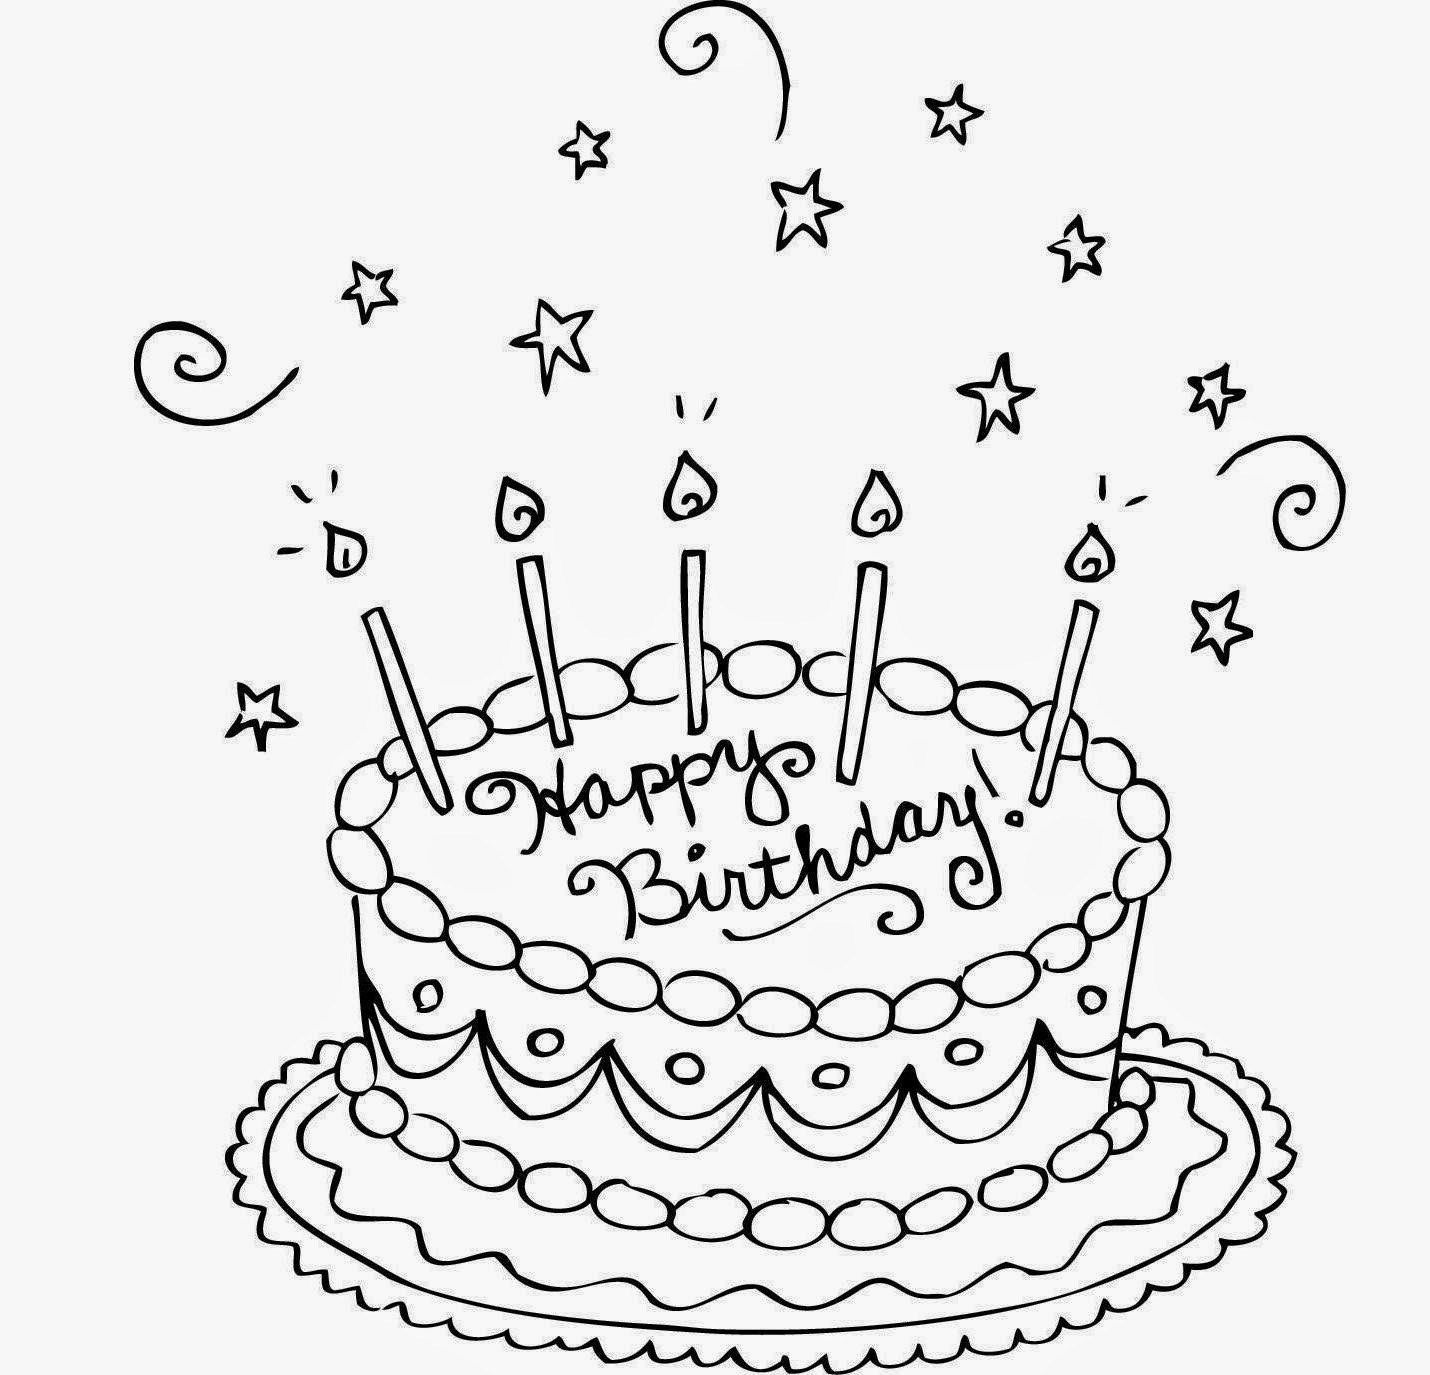 Admirable 32 Awesome Image Of Birthday Cake Drawing Cake Drawing Personalised Birthday Cards Veneteletsinfo